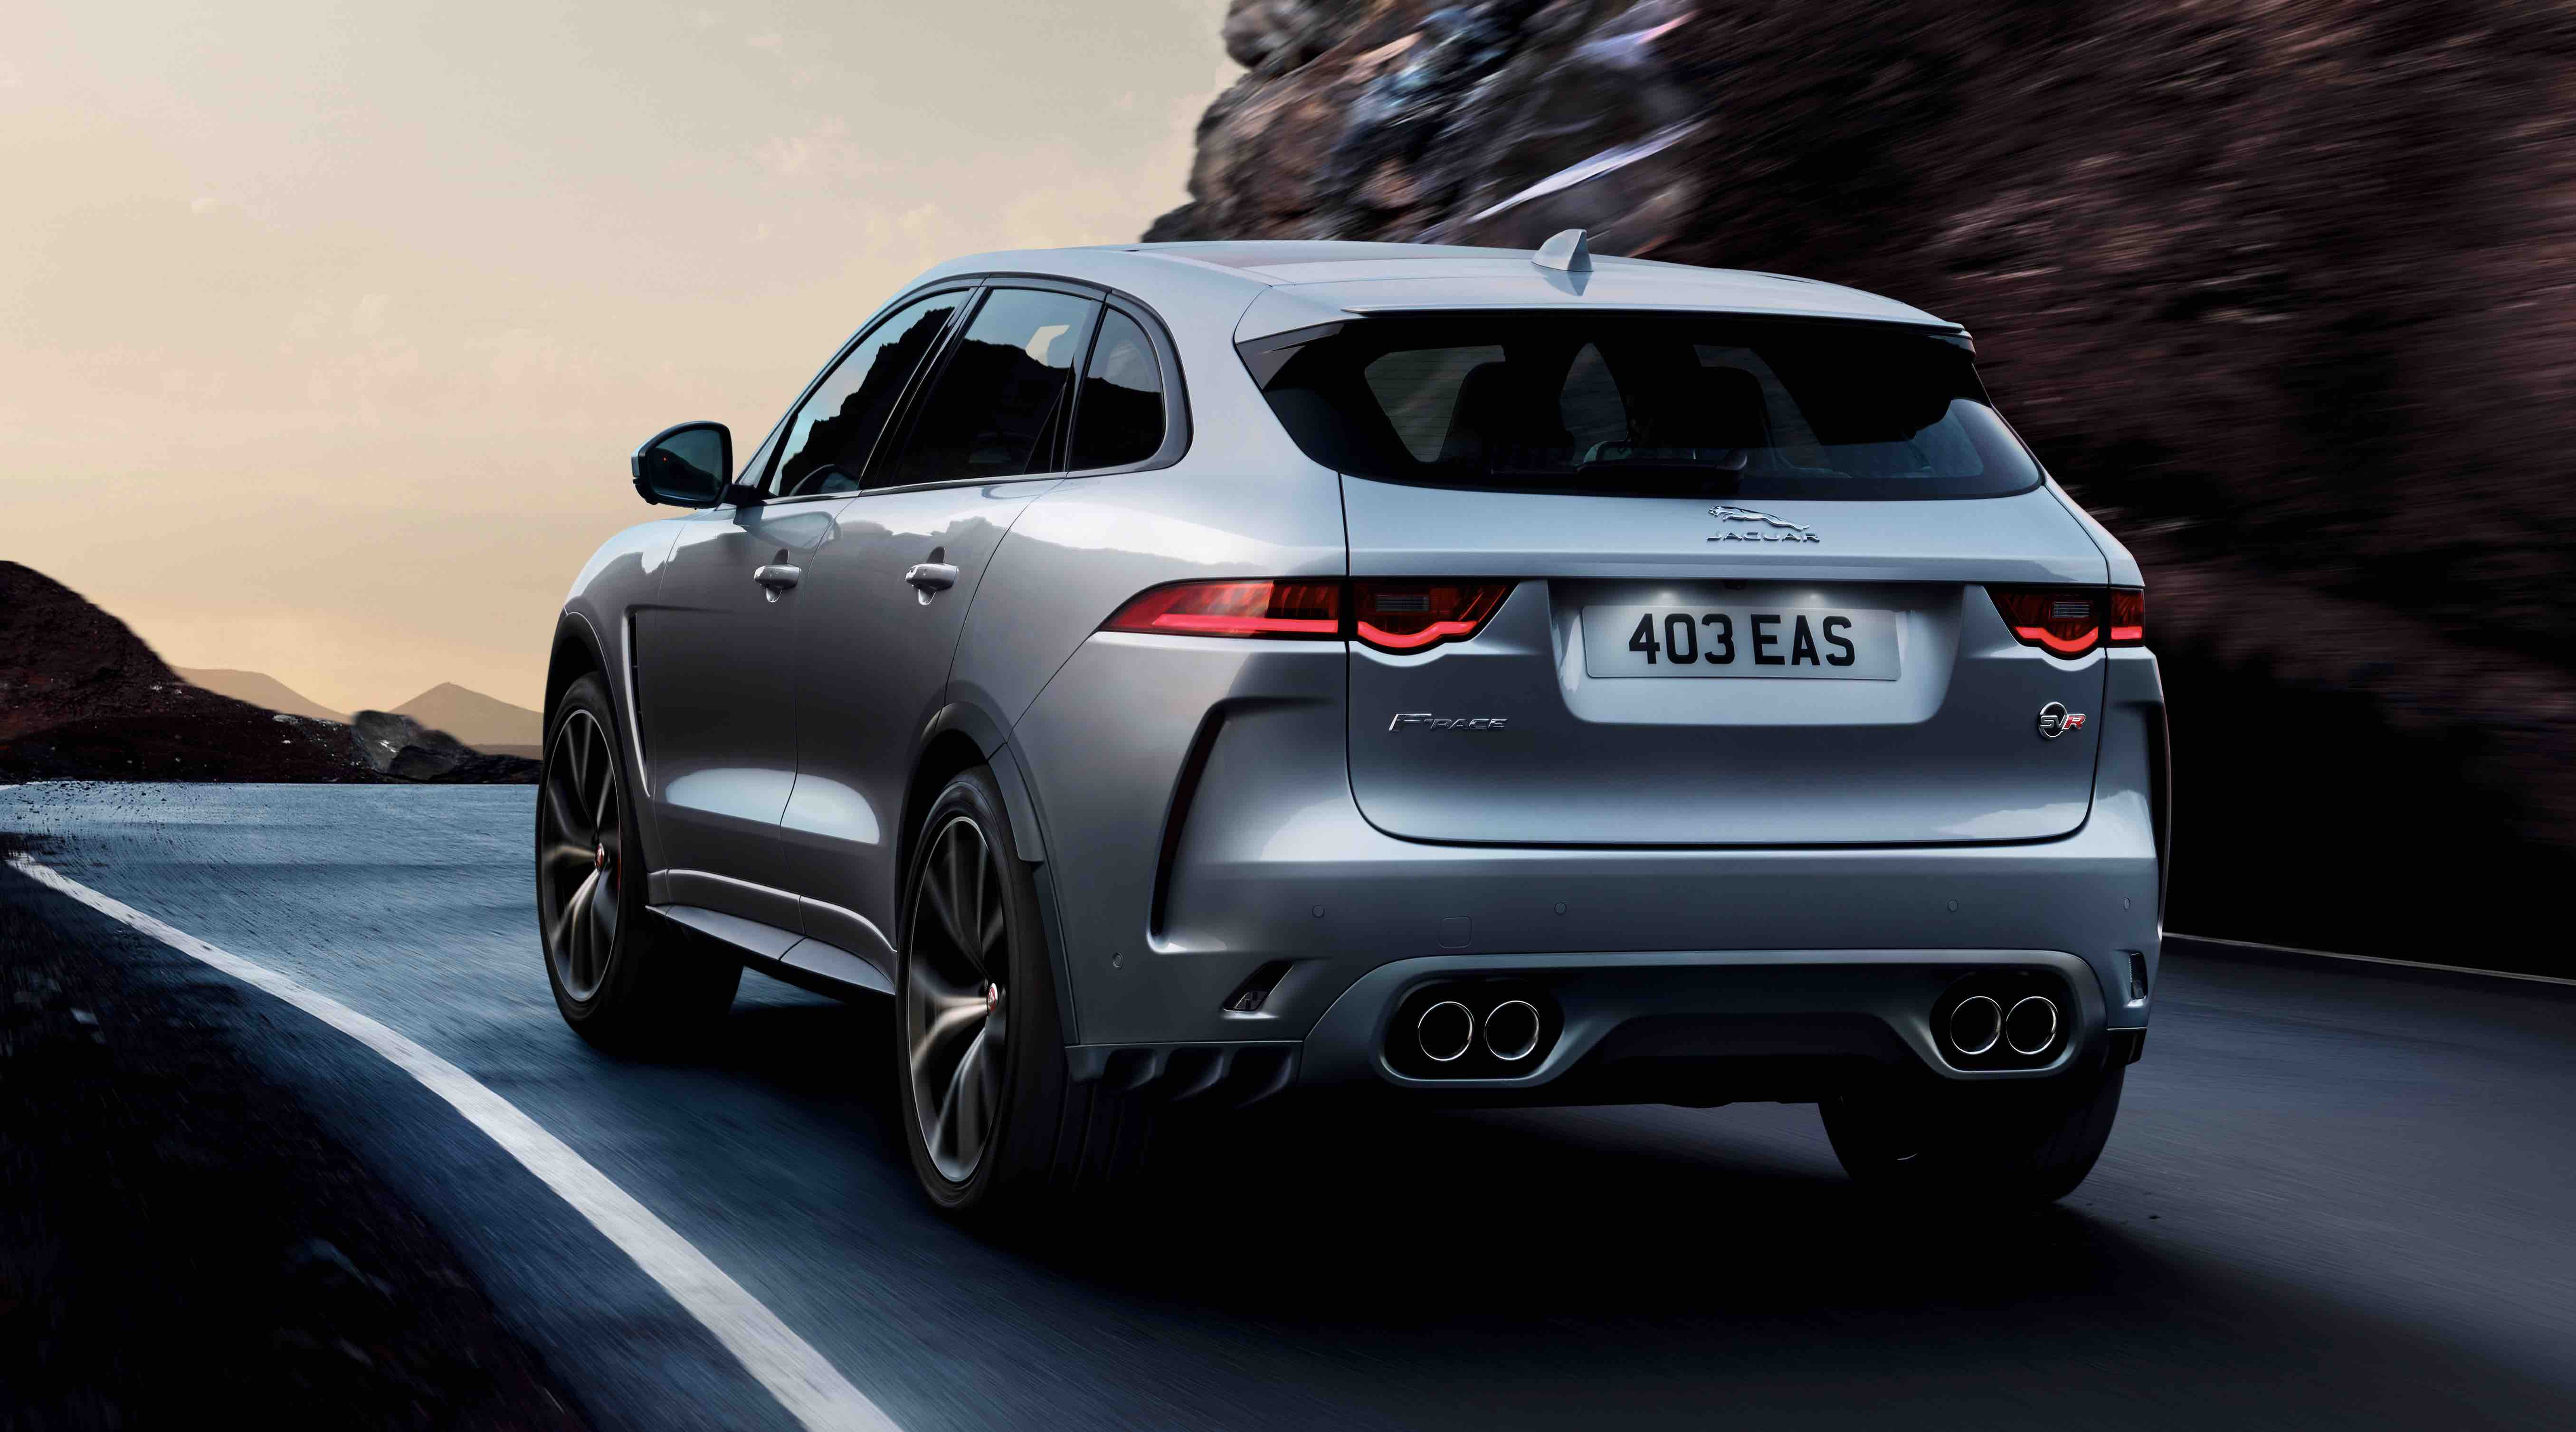 24 Great 2019 Jaguar F Pace Svr Price Price Review with 2019 Jaguar F Pace Svr Price Price